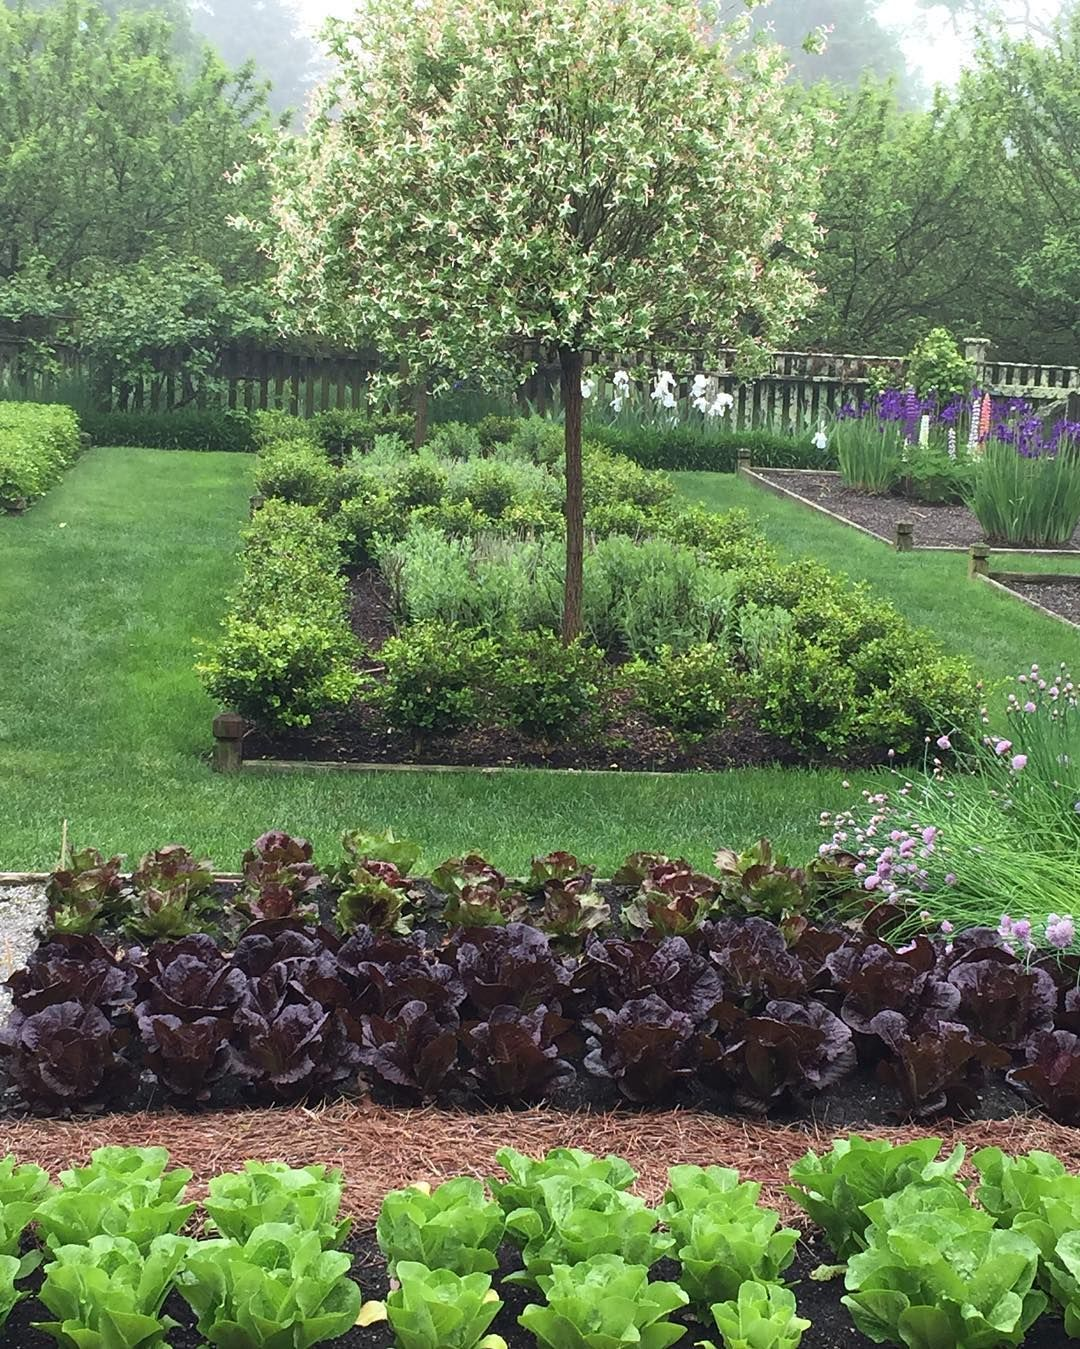 Back Yard Potager: Ina Garten's Backyard Looks Insanely Beautiful